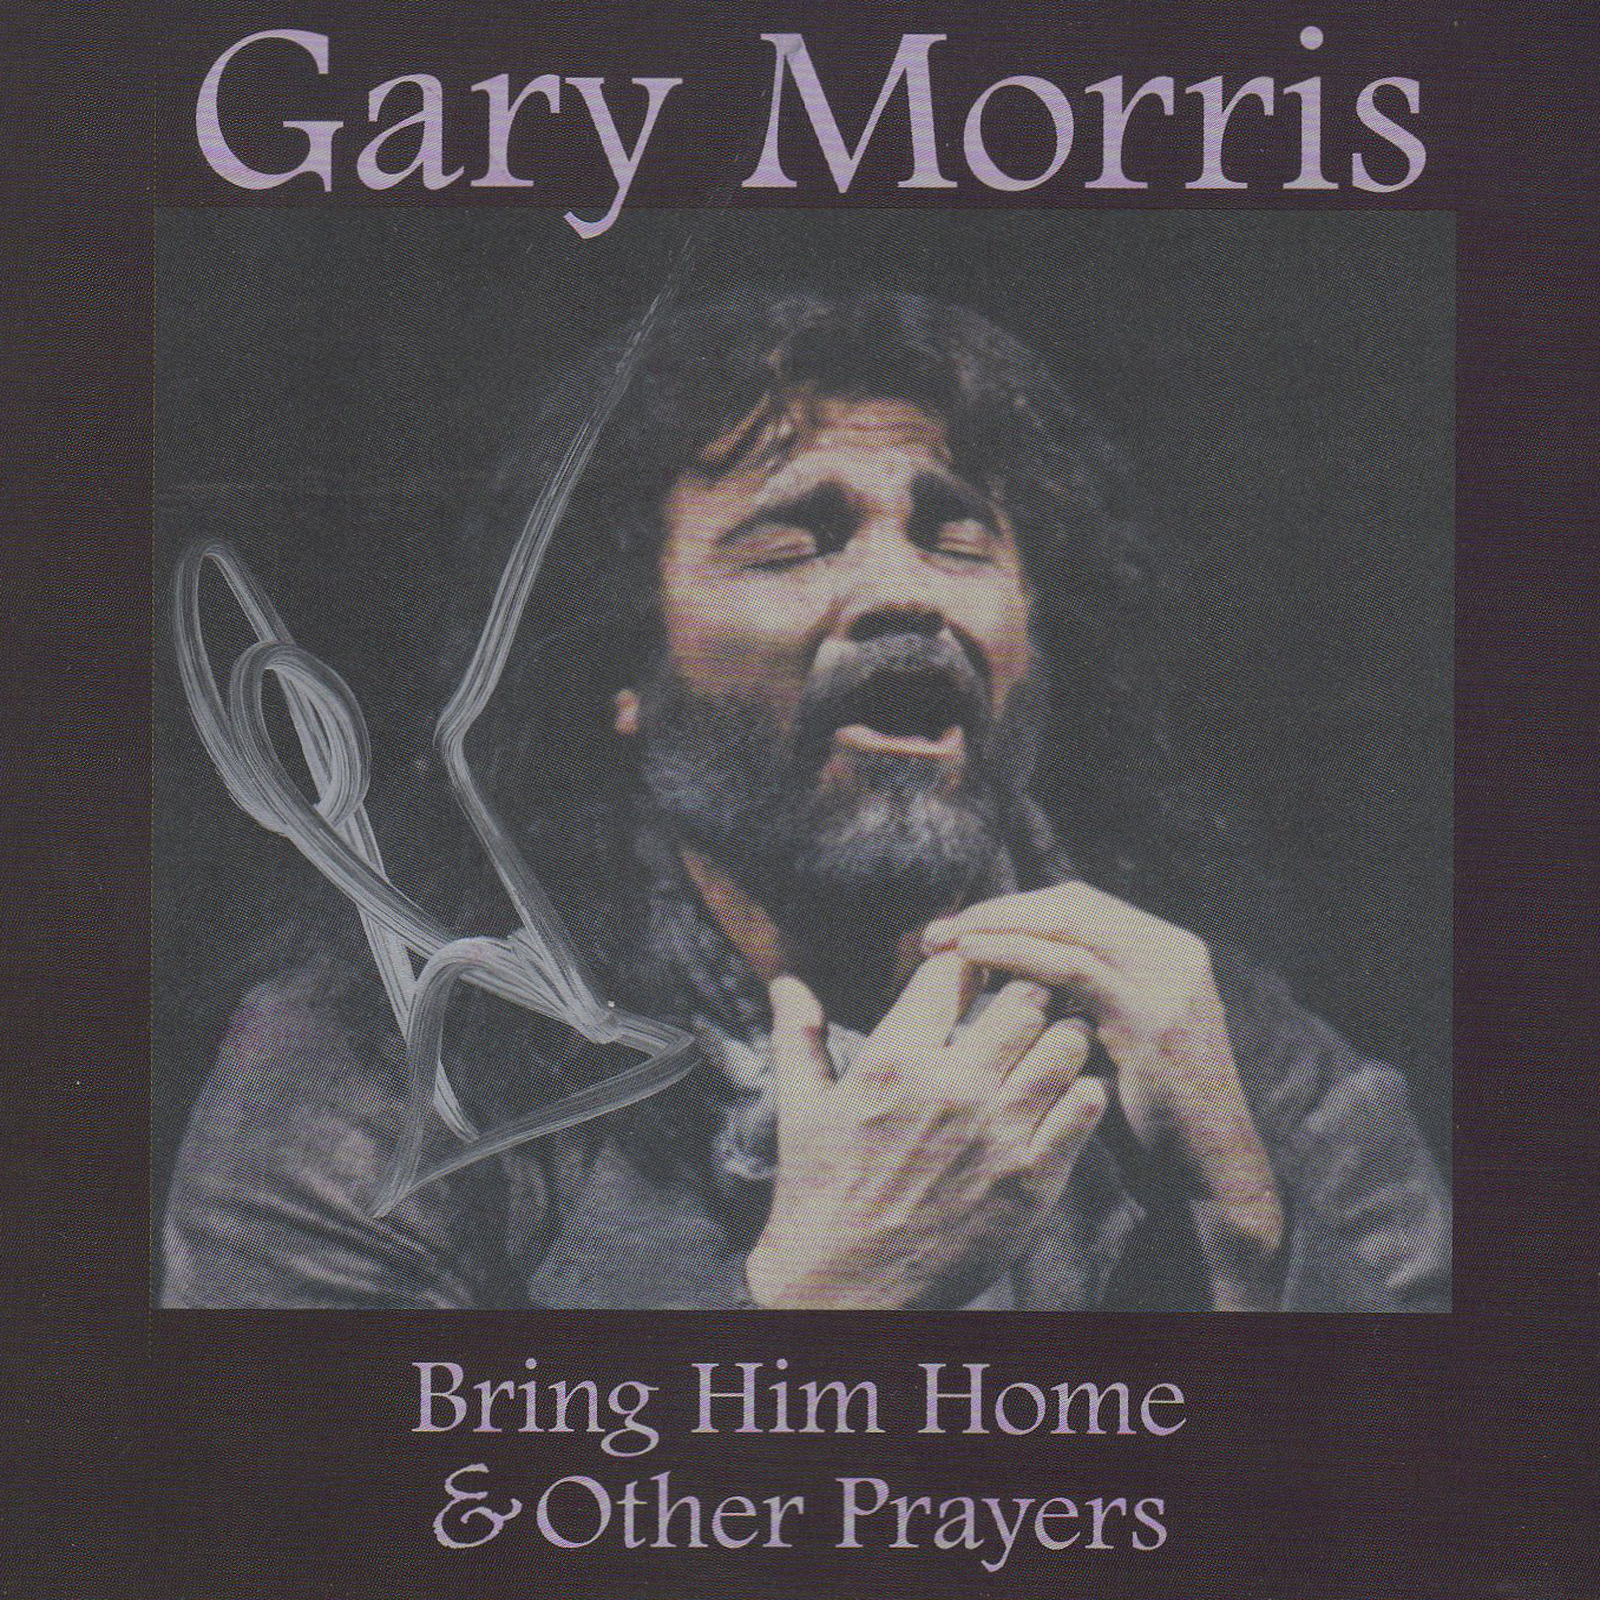 GARY MORRIS Bring Him Home Other Prayers CD Autographed Signed